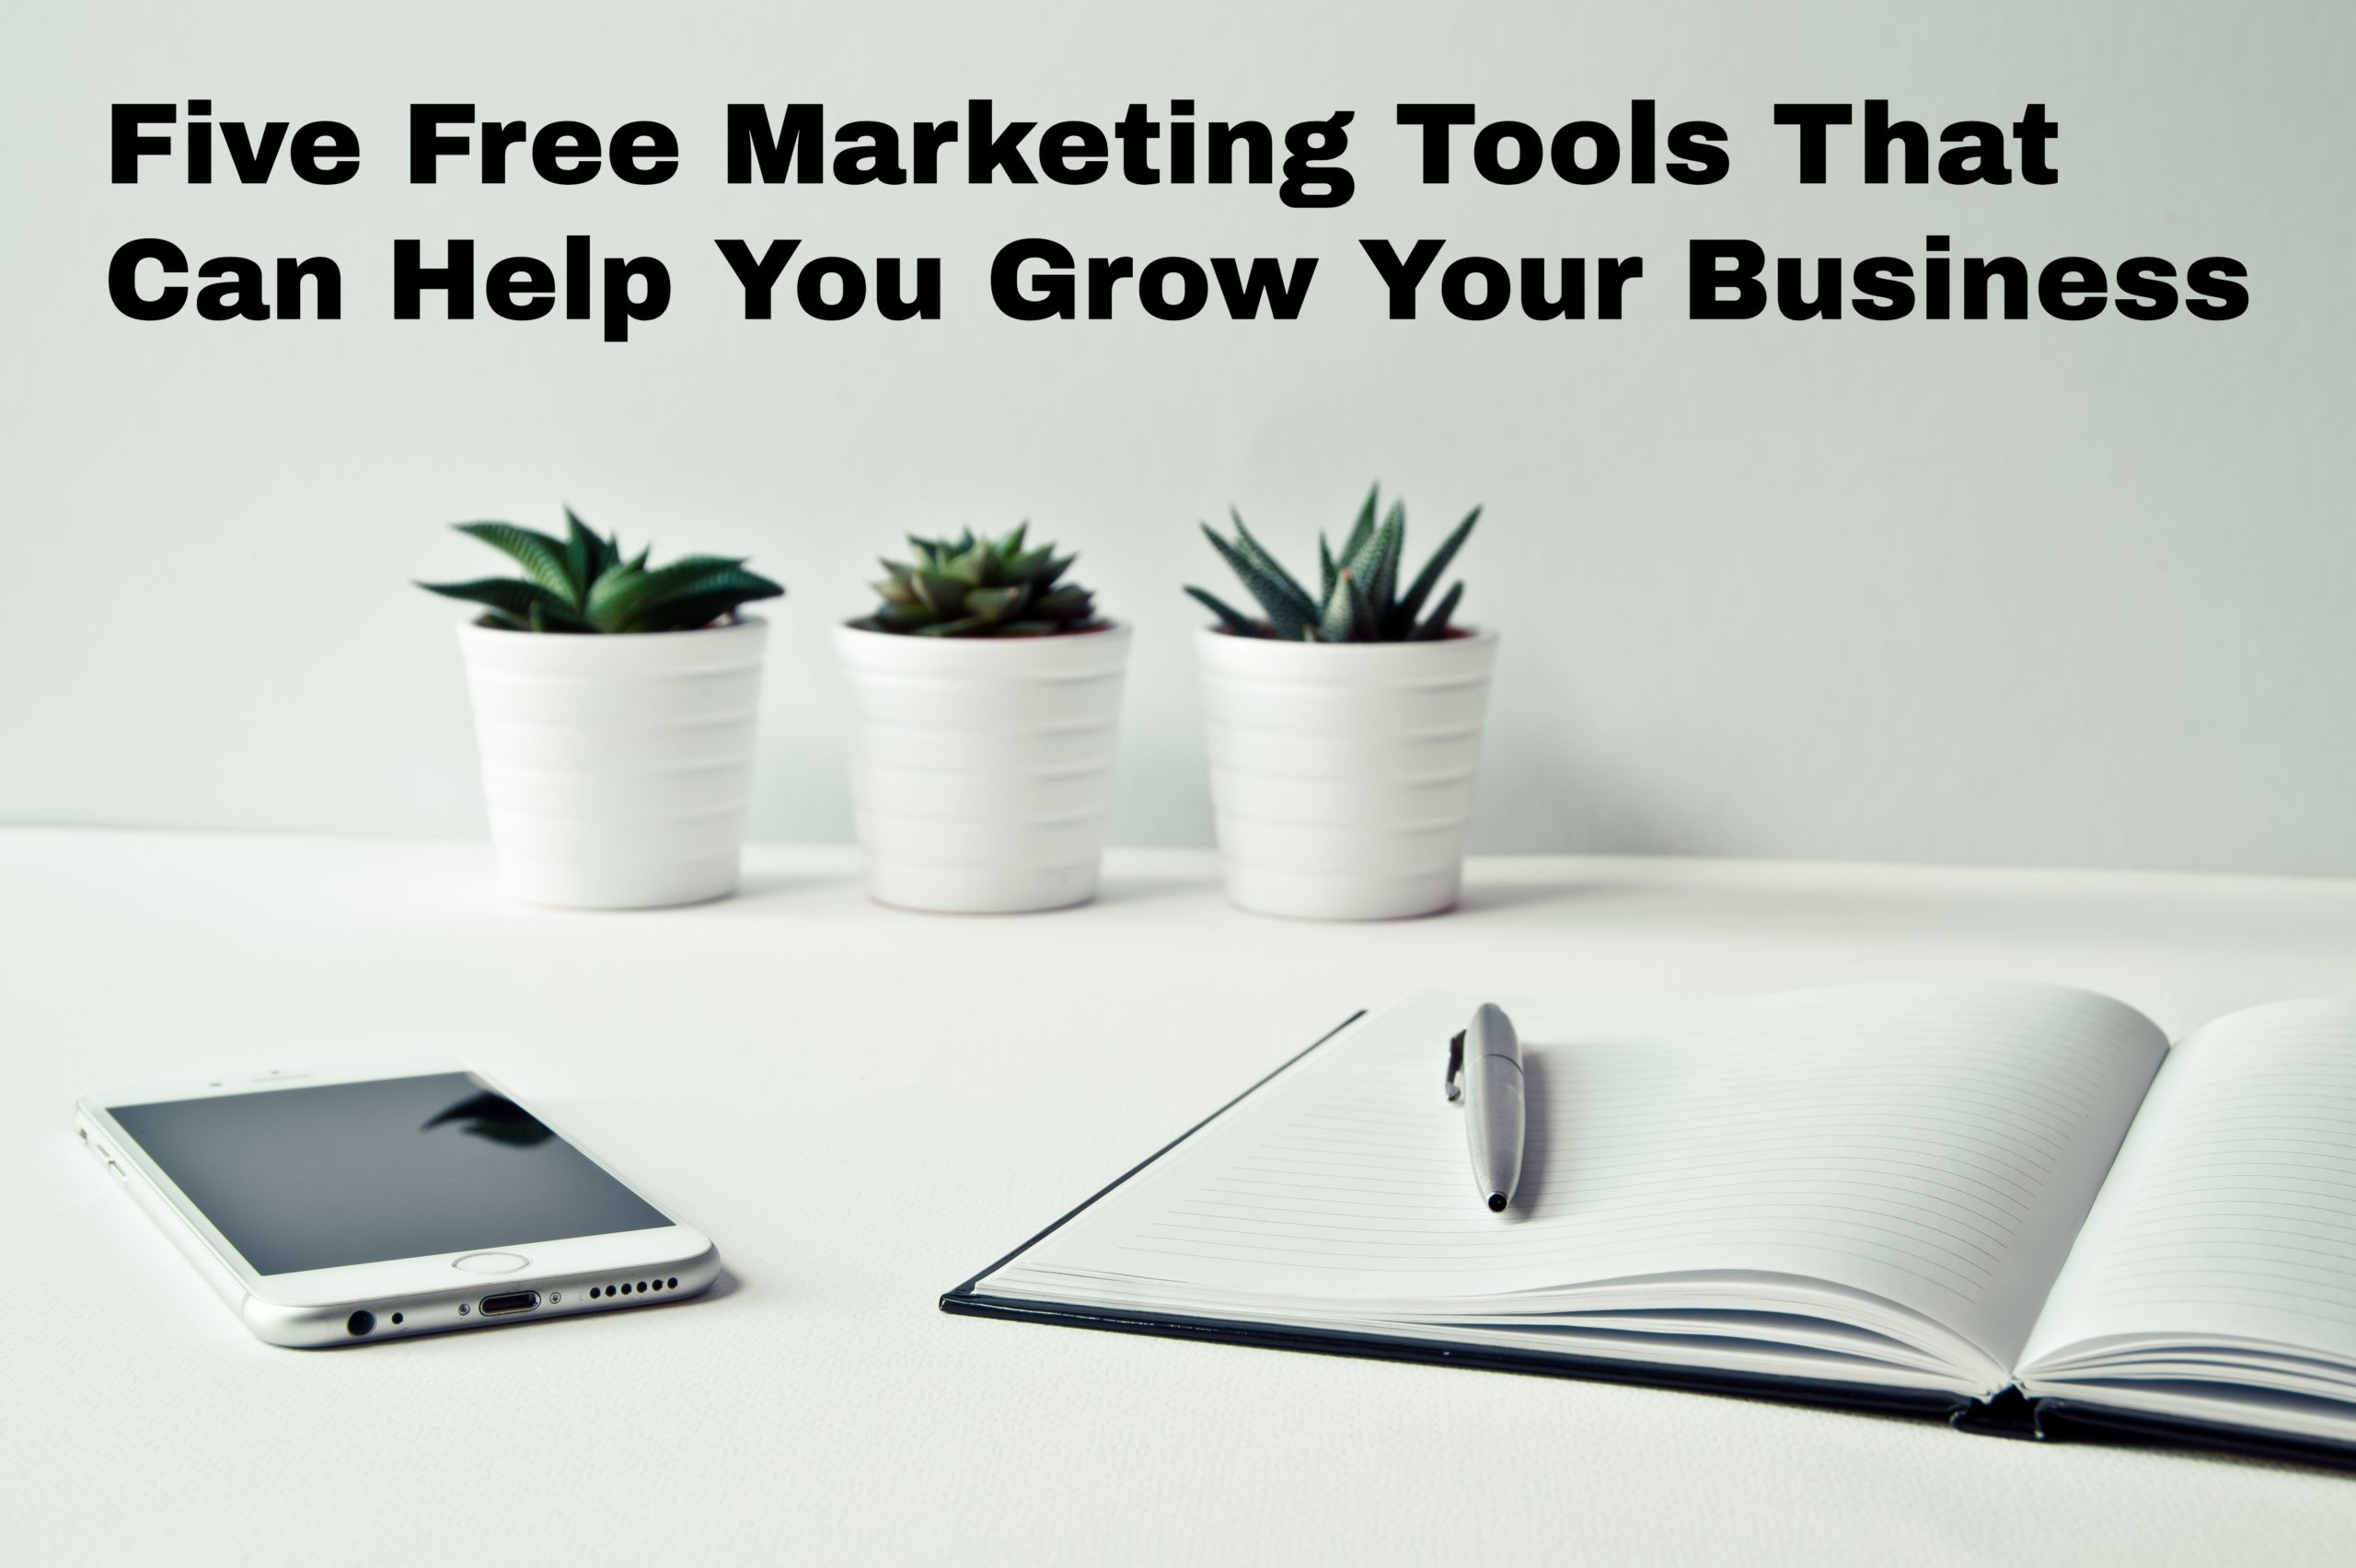 5 Free Marketing Tools to Help You Grow Your (Divi) Business